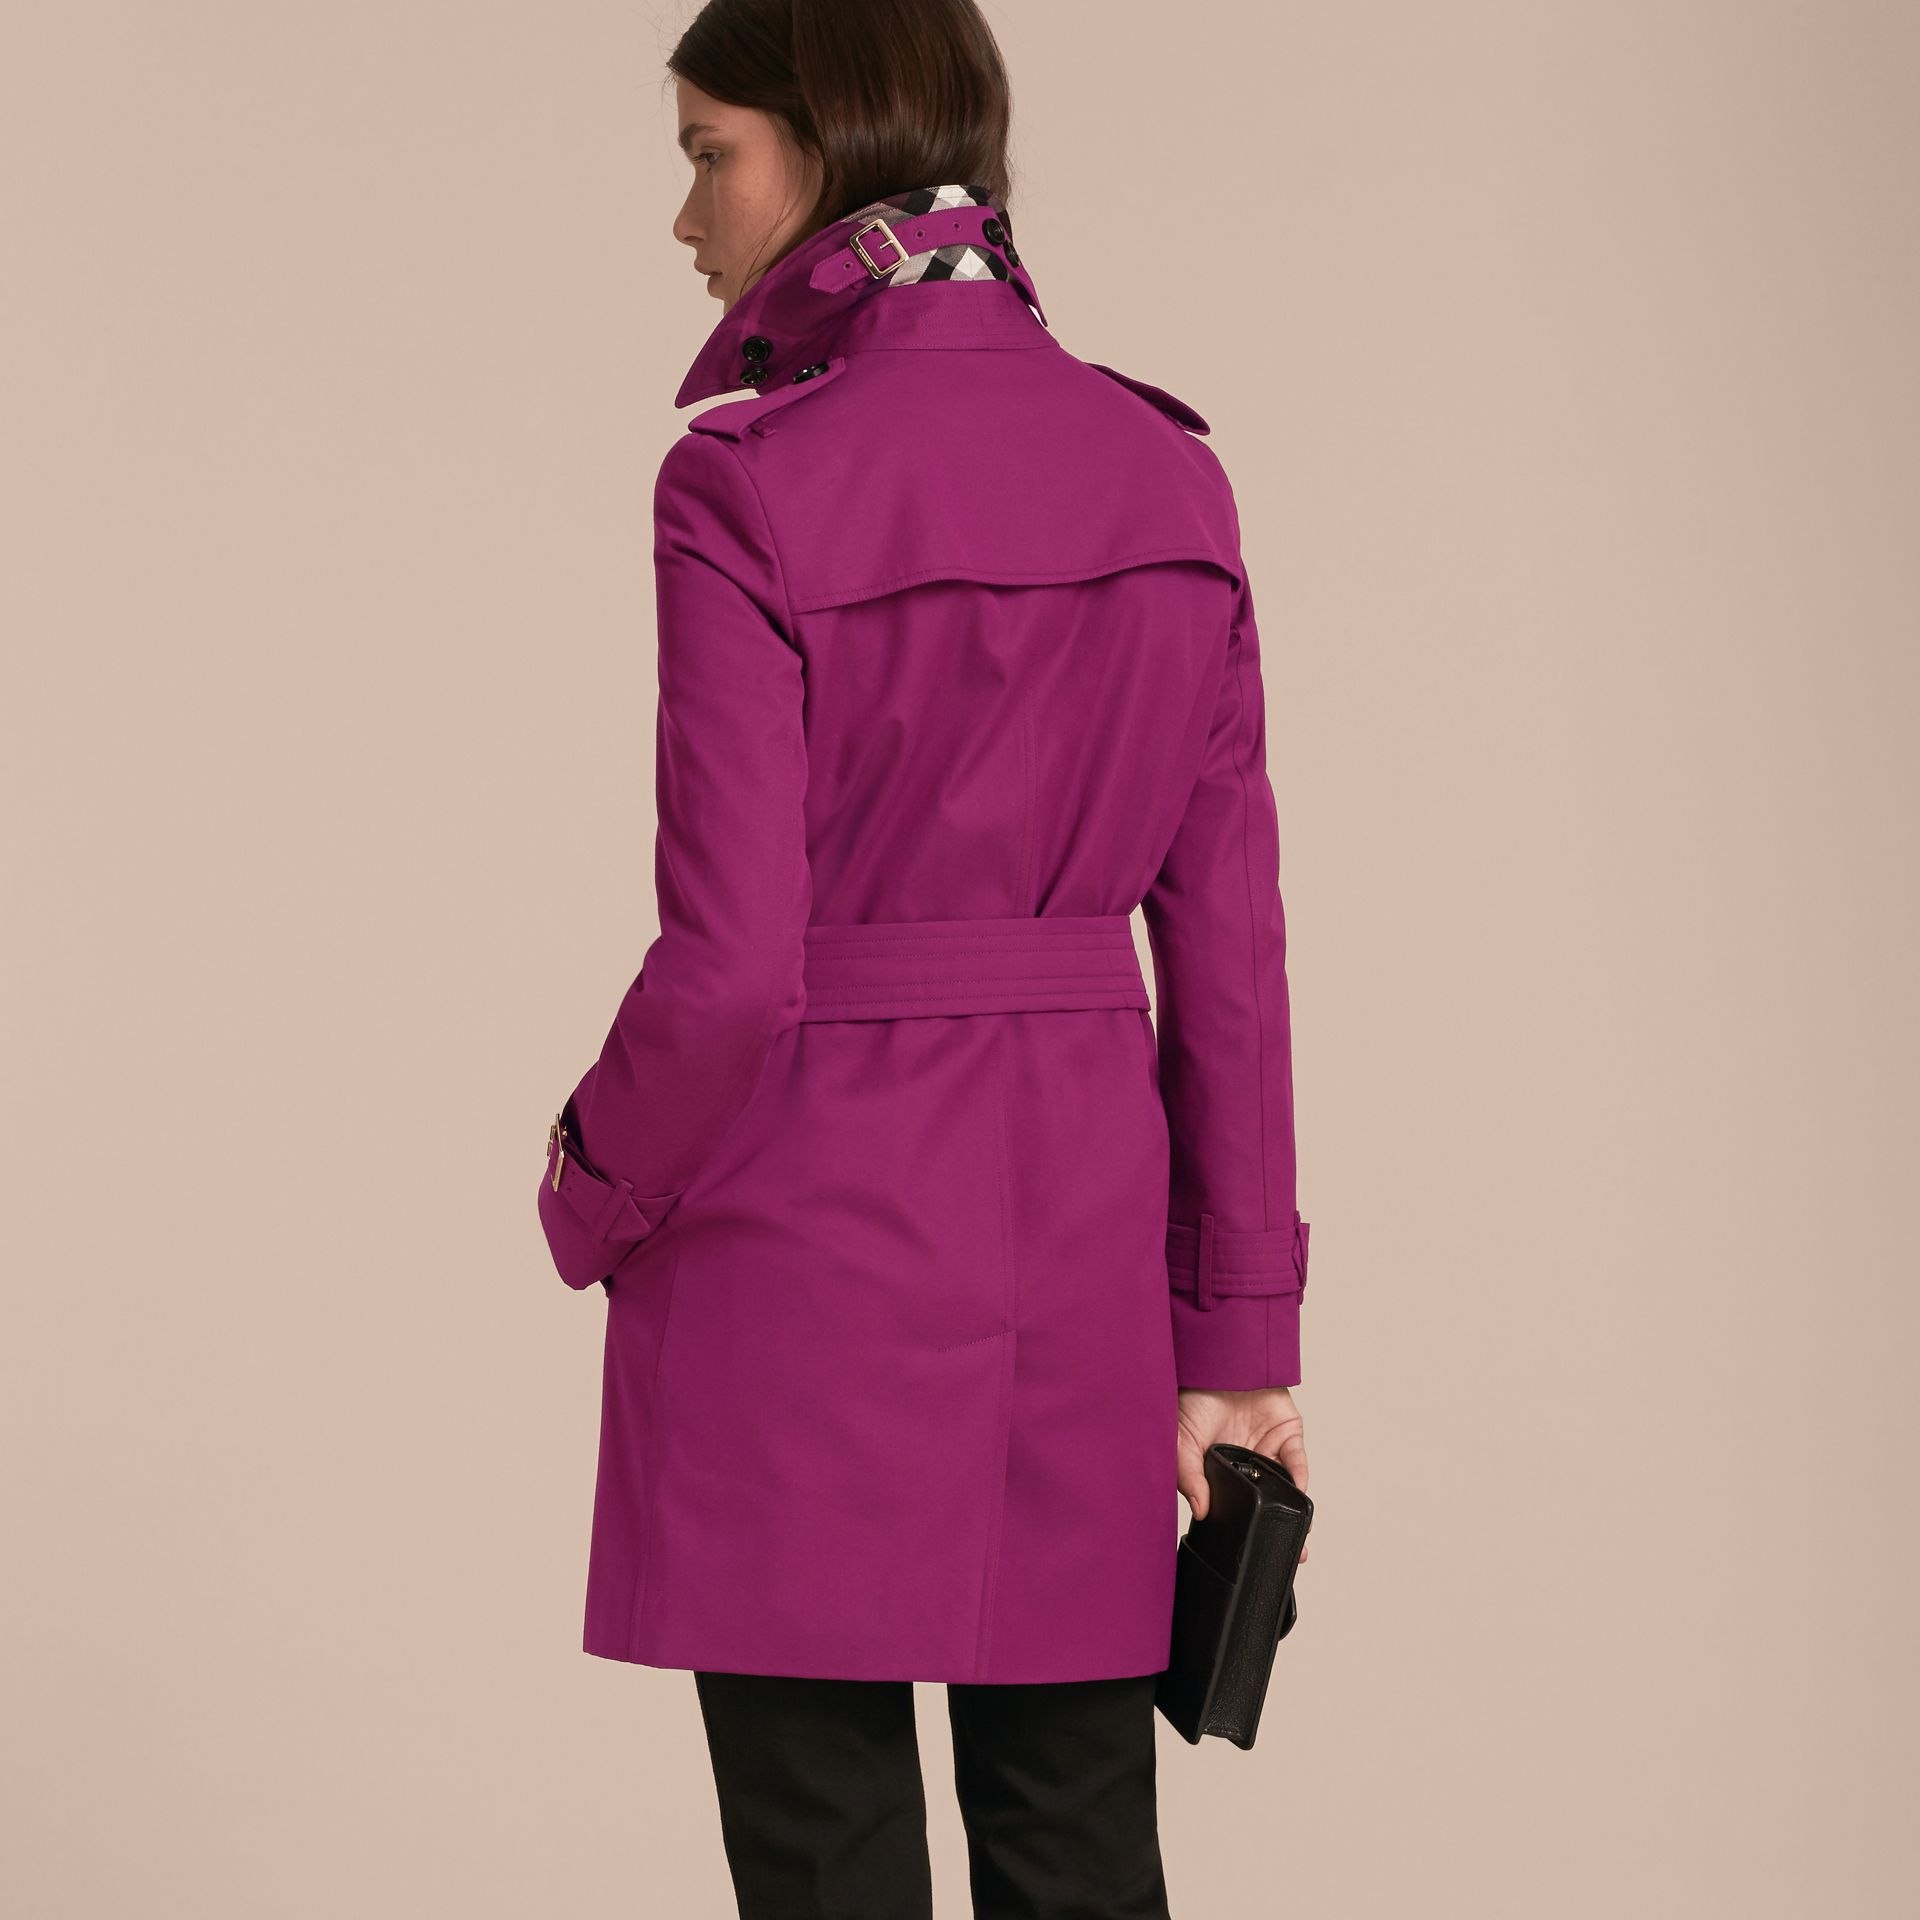 Single-breasted Trench Coat with Metal Buckle Detail Magenta Pink - gallery image 3